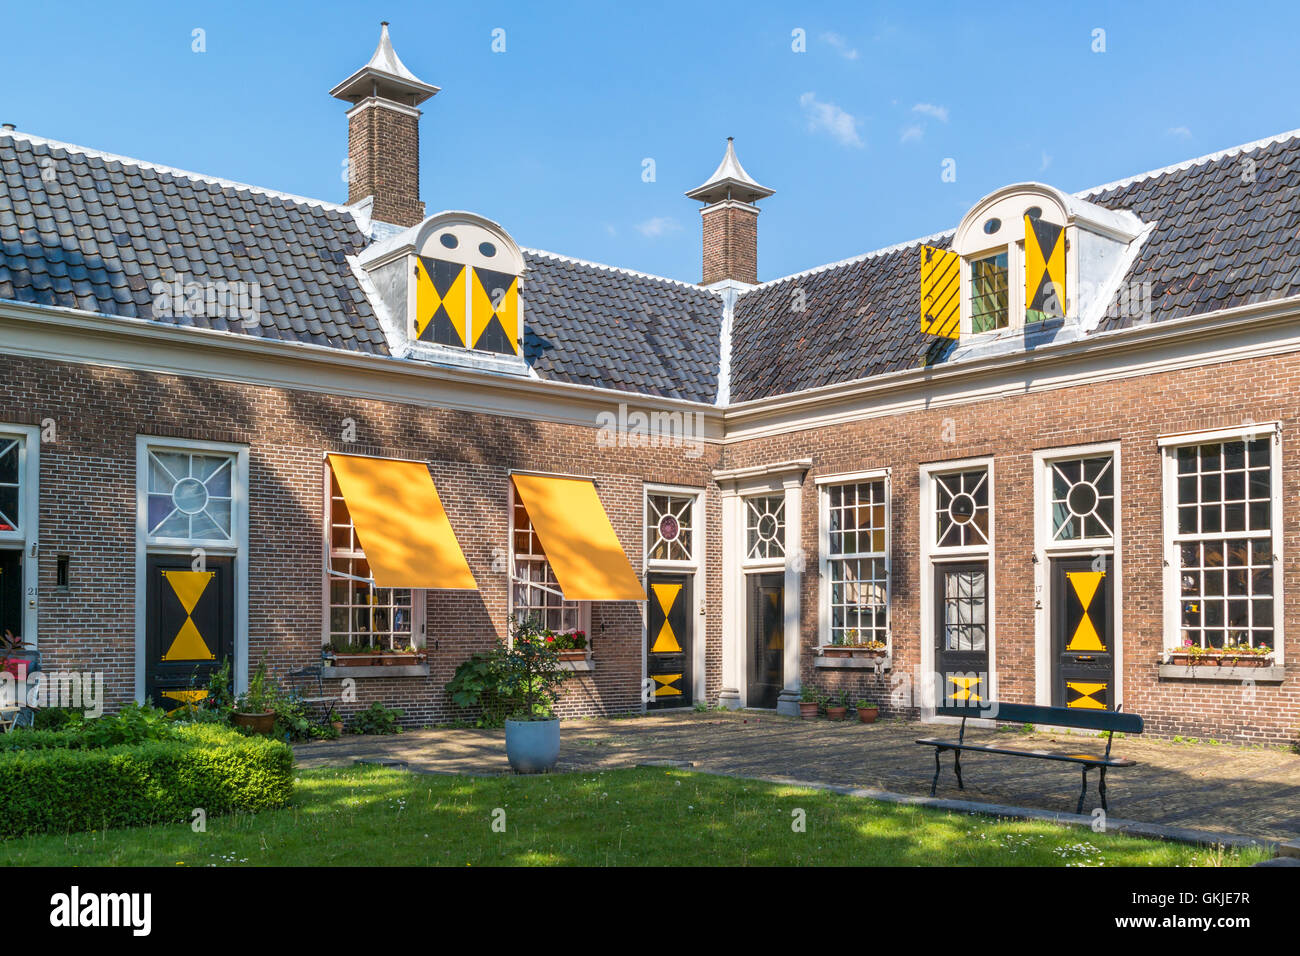 van haarlem photos van haarlem images alamy. Black Bedroom Furniture Sets. Home Design Ideas